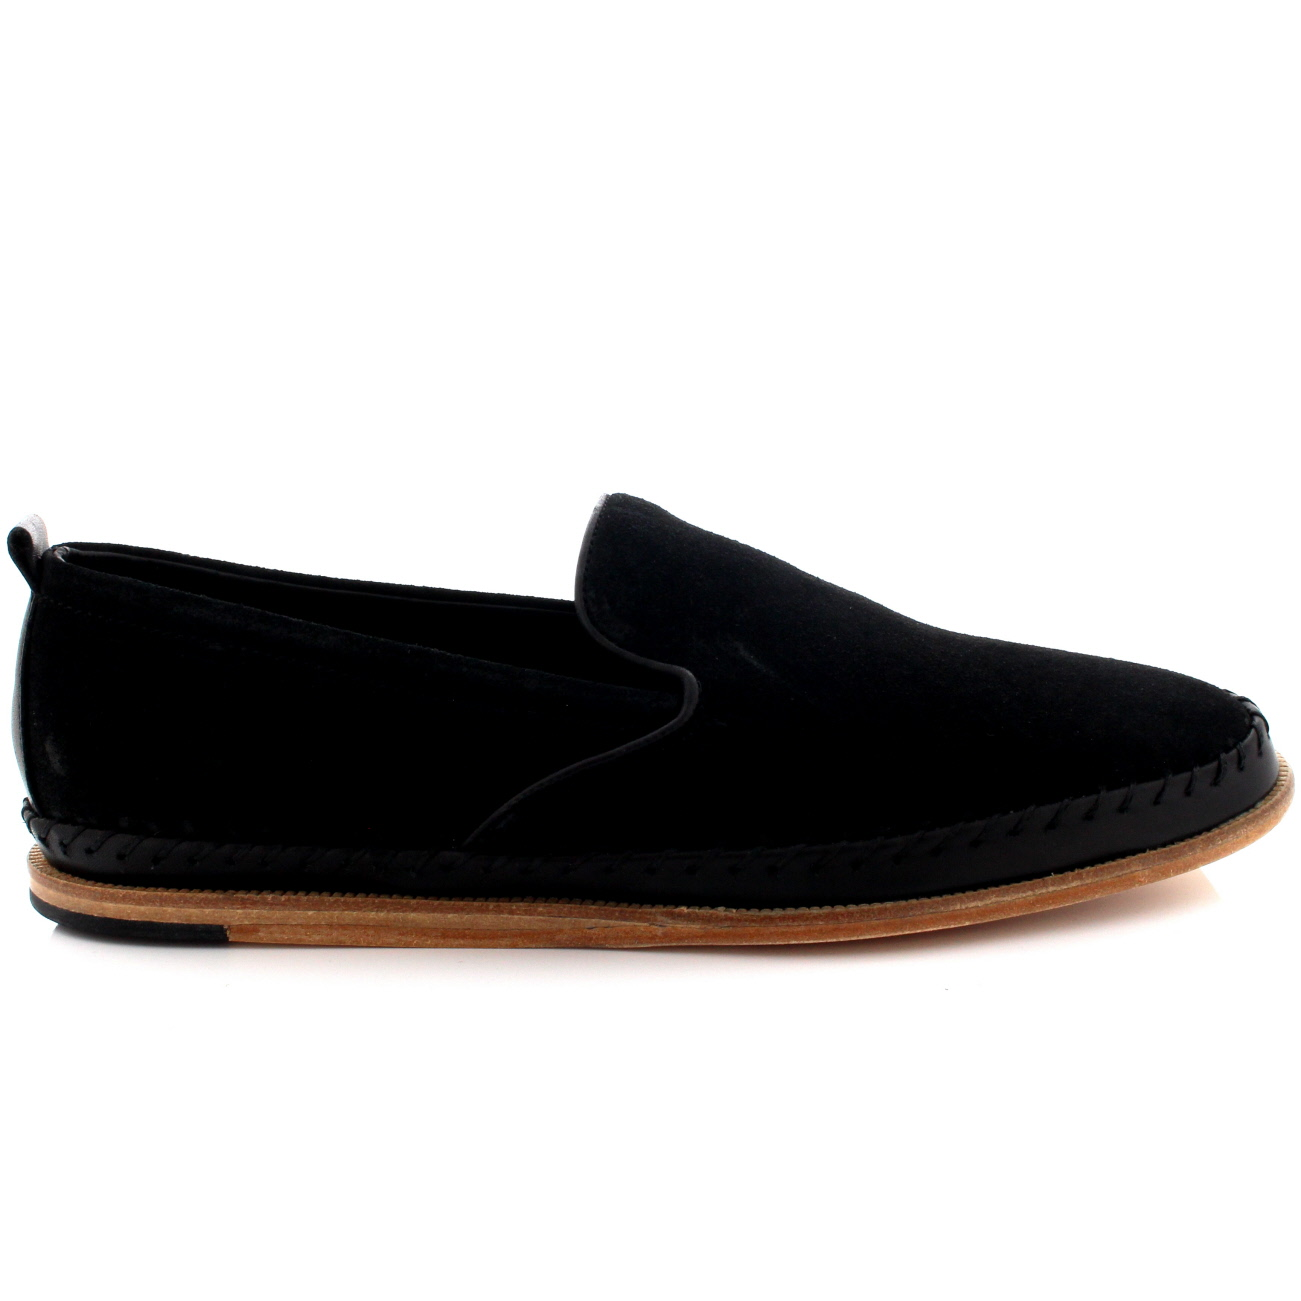 mens h by hudson macuco suede smart flat slip on casual